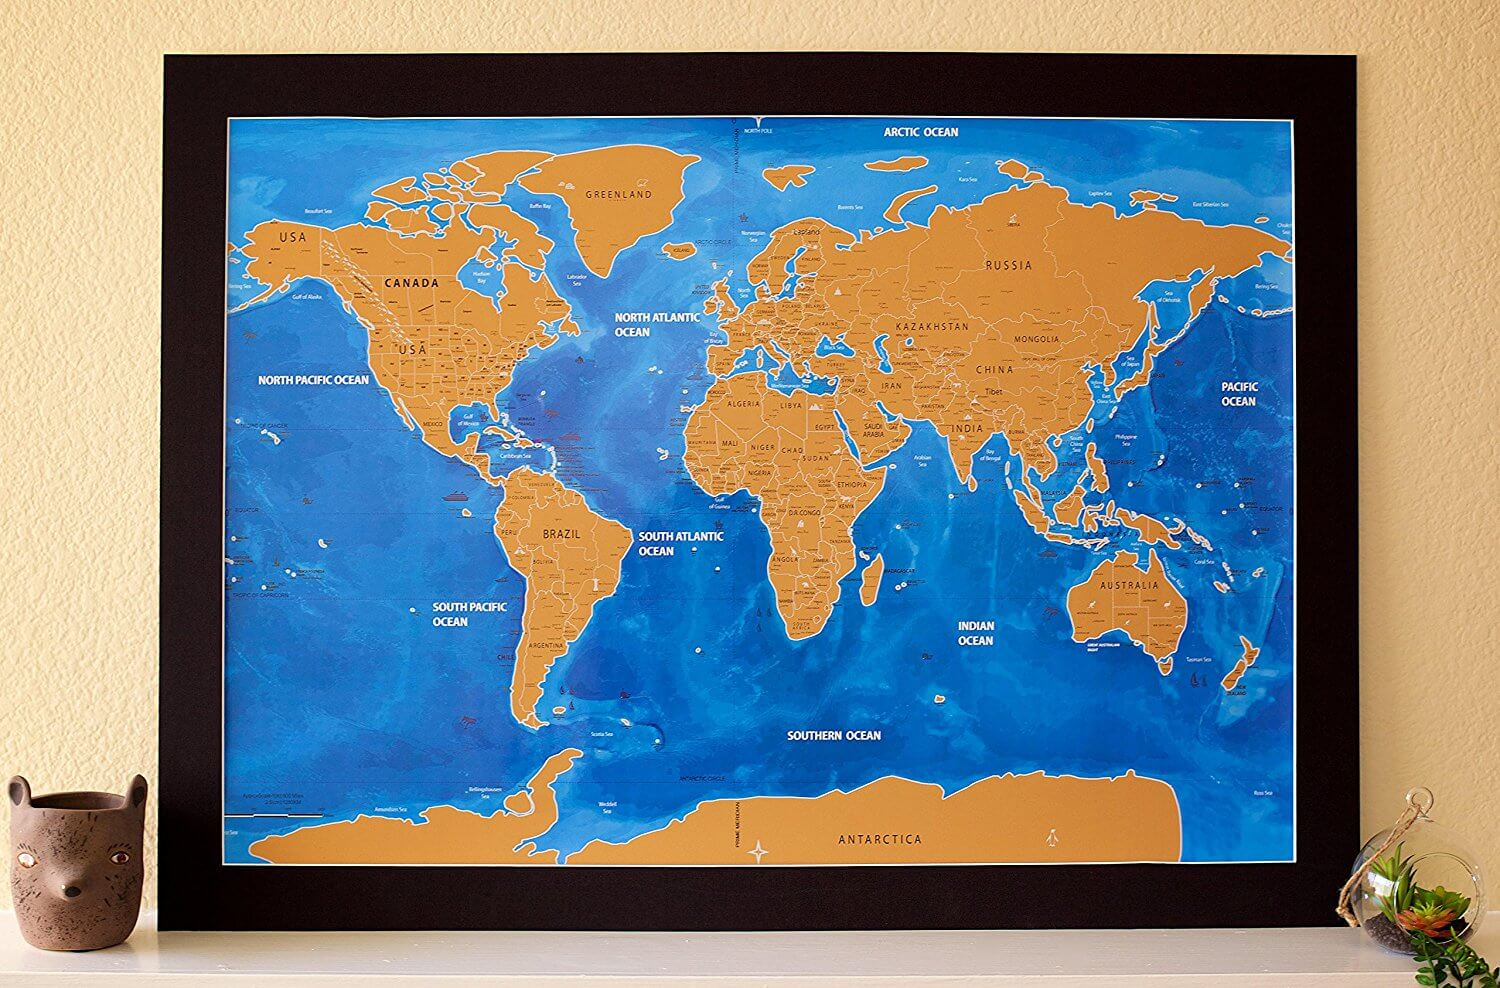 World scratch map blue ocean edition travel bible shop sale out of stock gumiabroncs Image collections